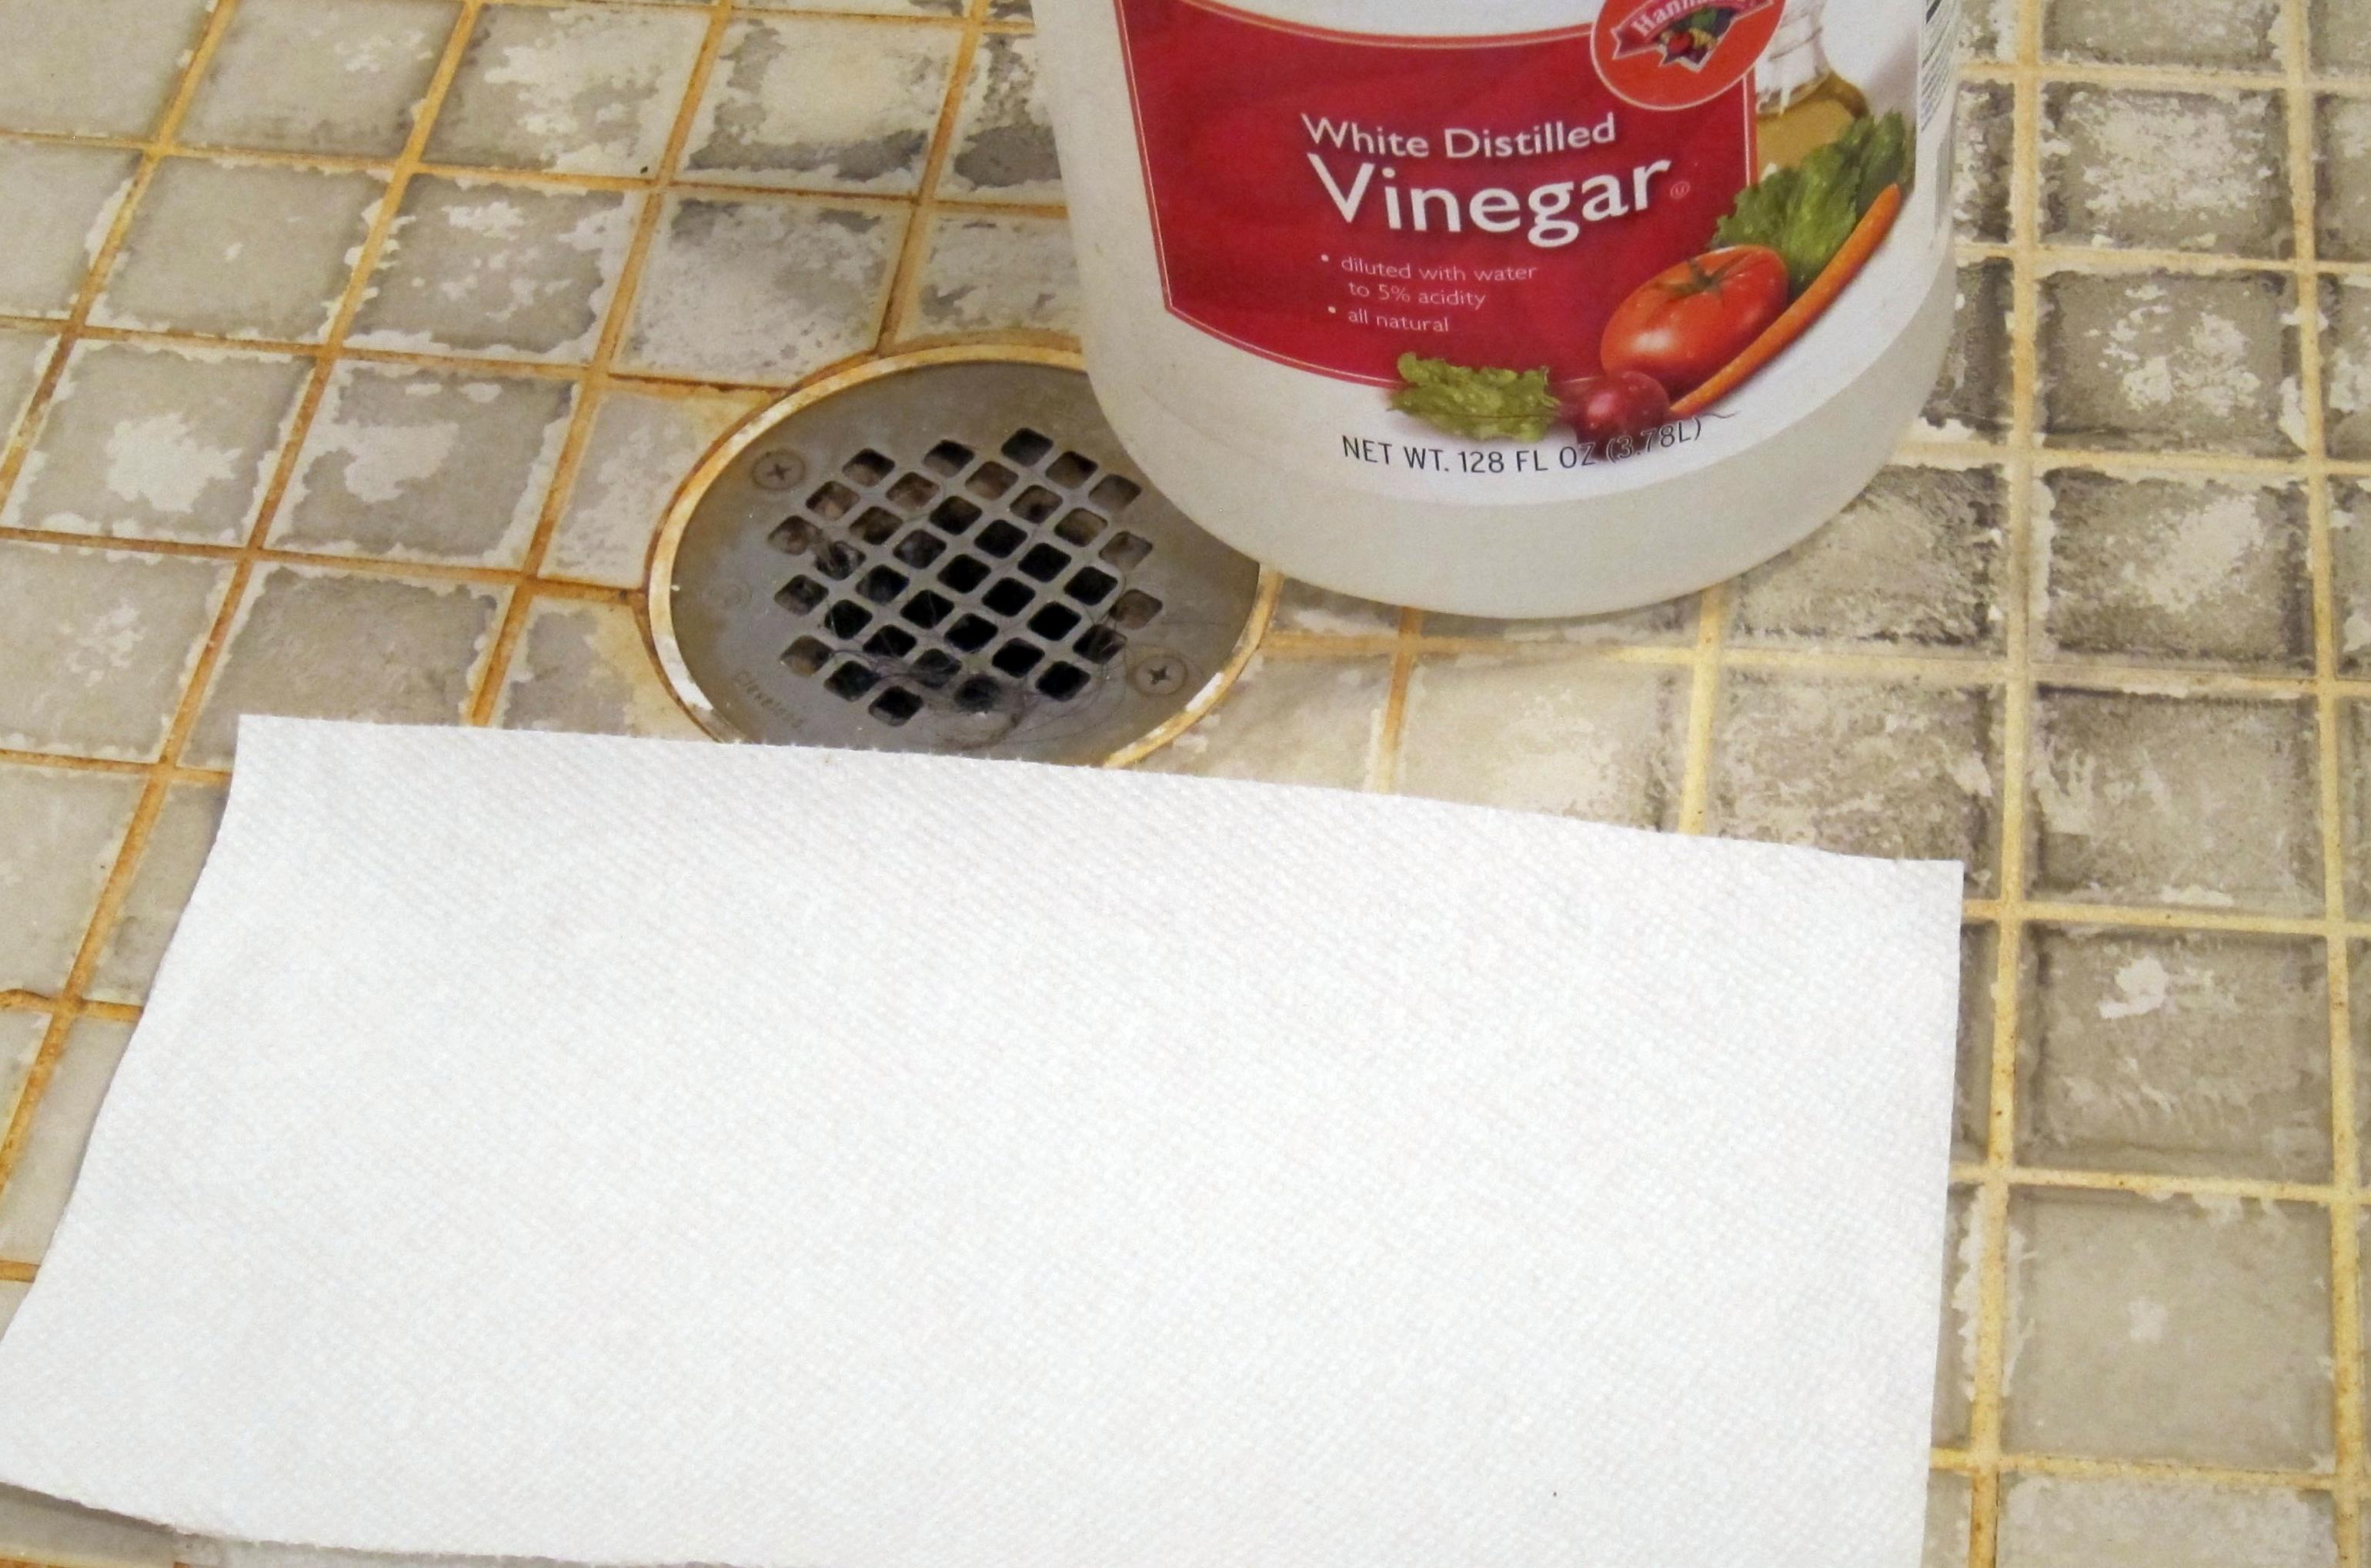 All you need to clean hard water stains is vinegar and time | The ...